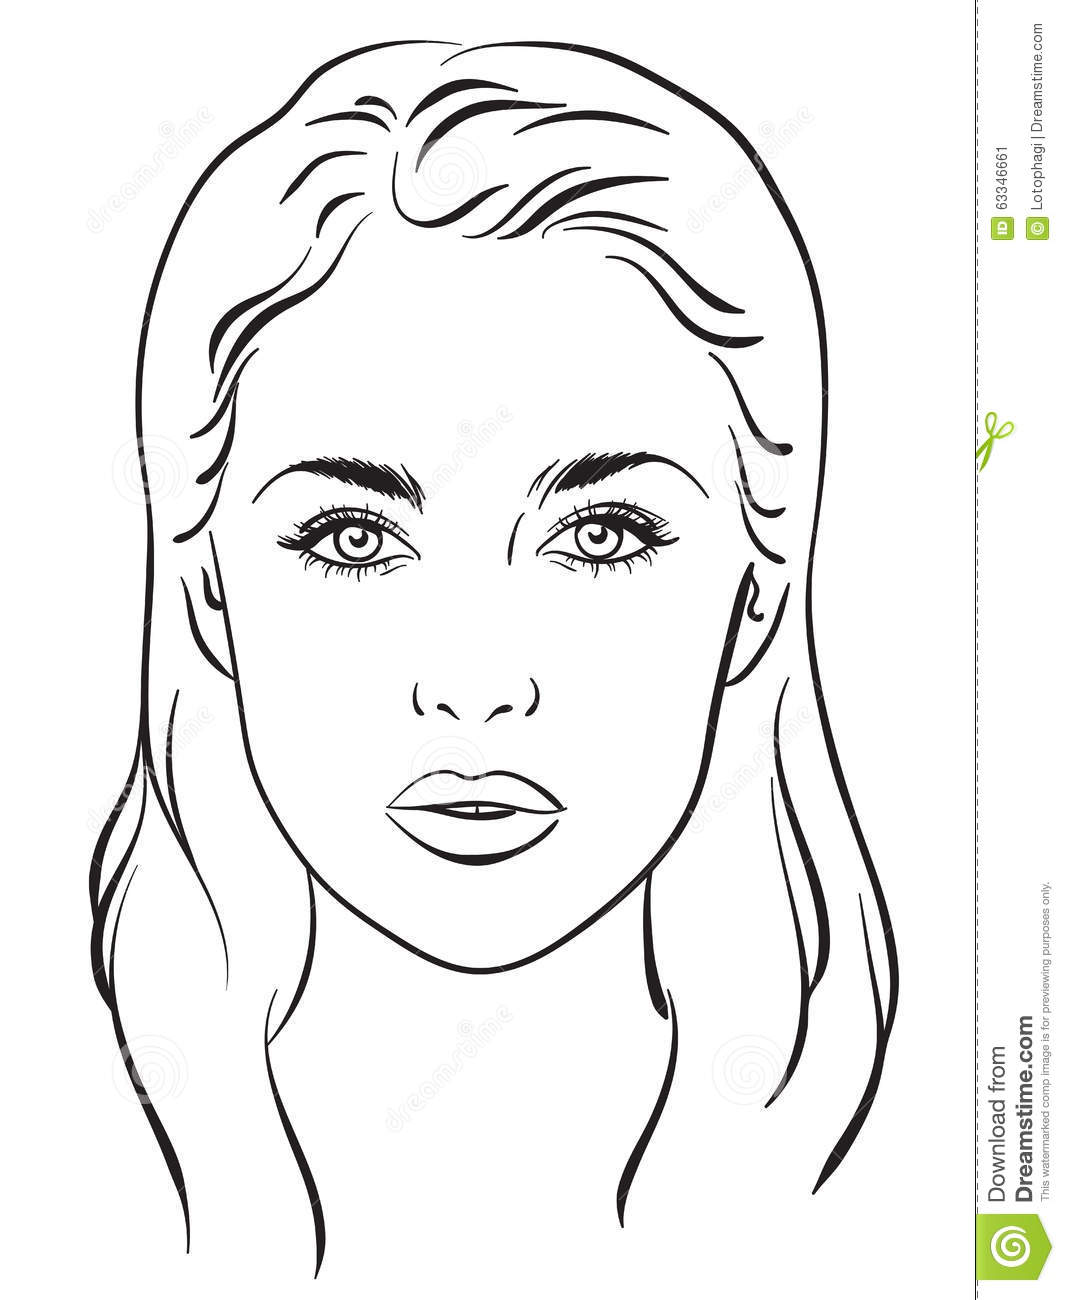 Blank Face Diagram Worksheet And Wiring Ruud Urgg12e61ckr Beautiful Woman Portrait Chart Vector Illustration Stock Rh Dreamstime Com Muscle Eye